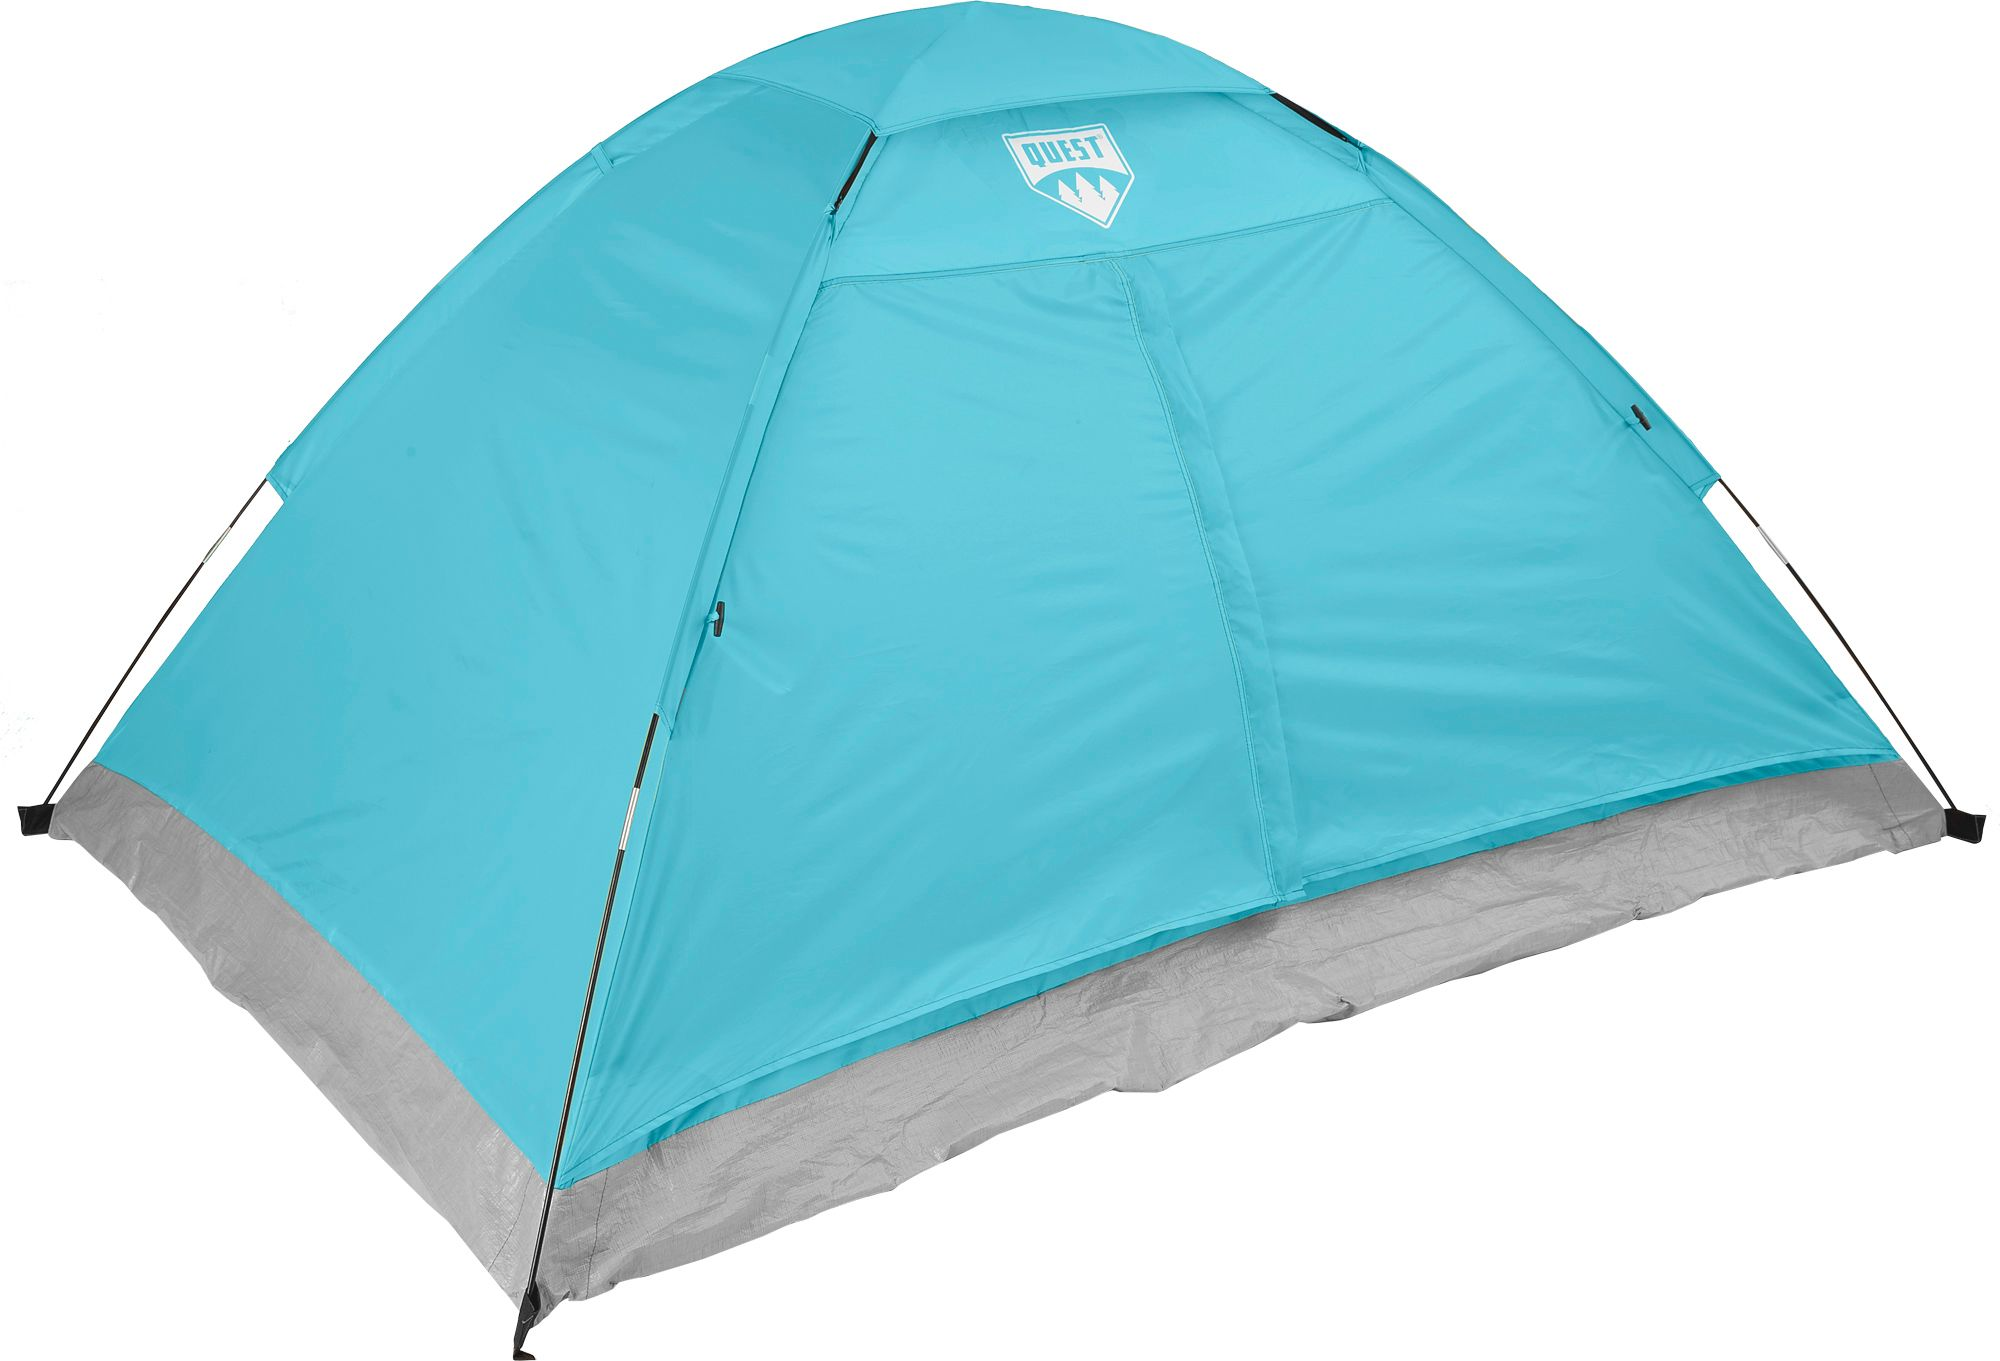 noImageFound ???  sc 1 st  DICKu0027S Sporting Goods & Quest 2 Person Dome Tent | DICKu0027S Sporting Goods